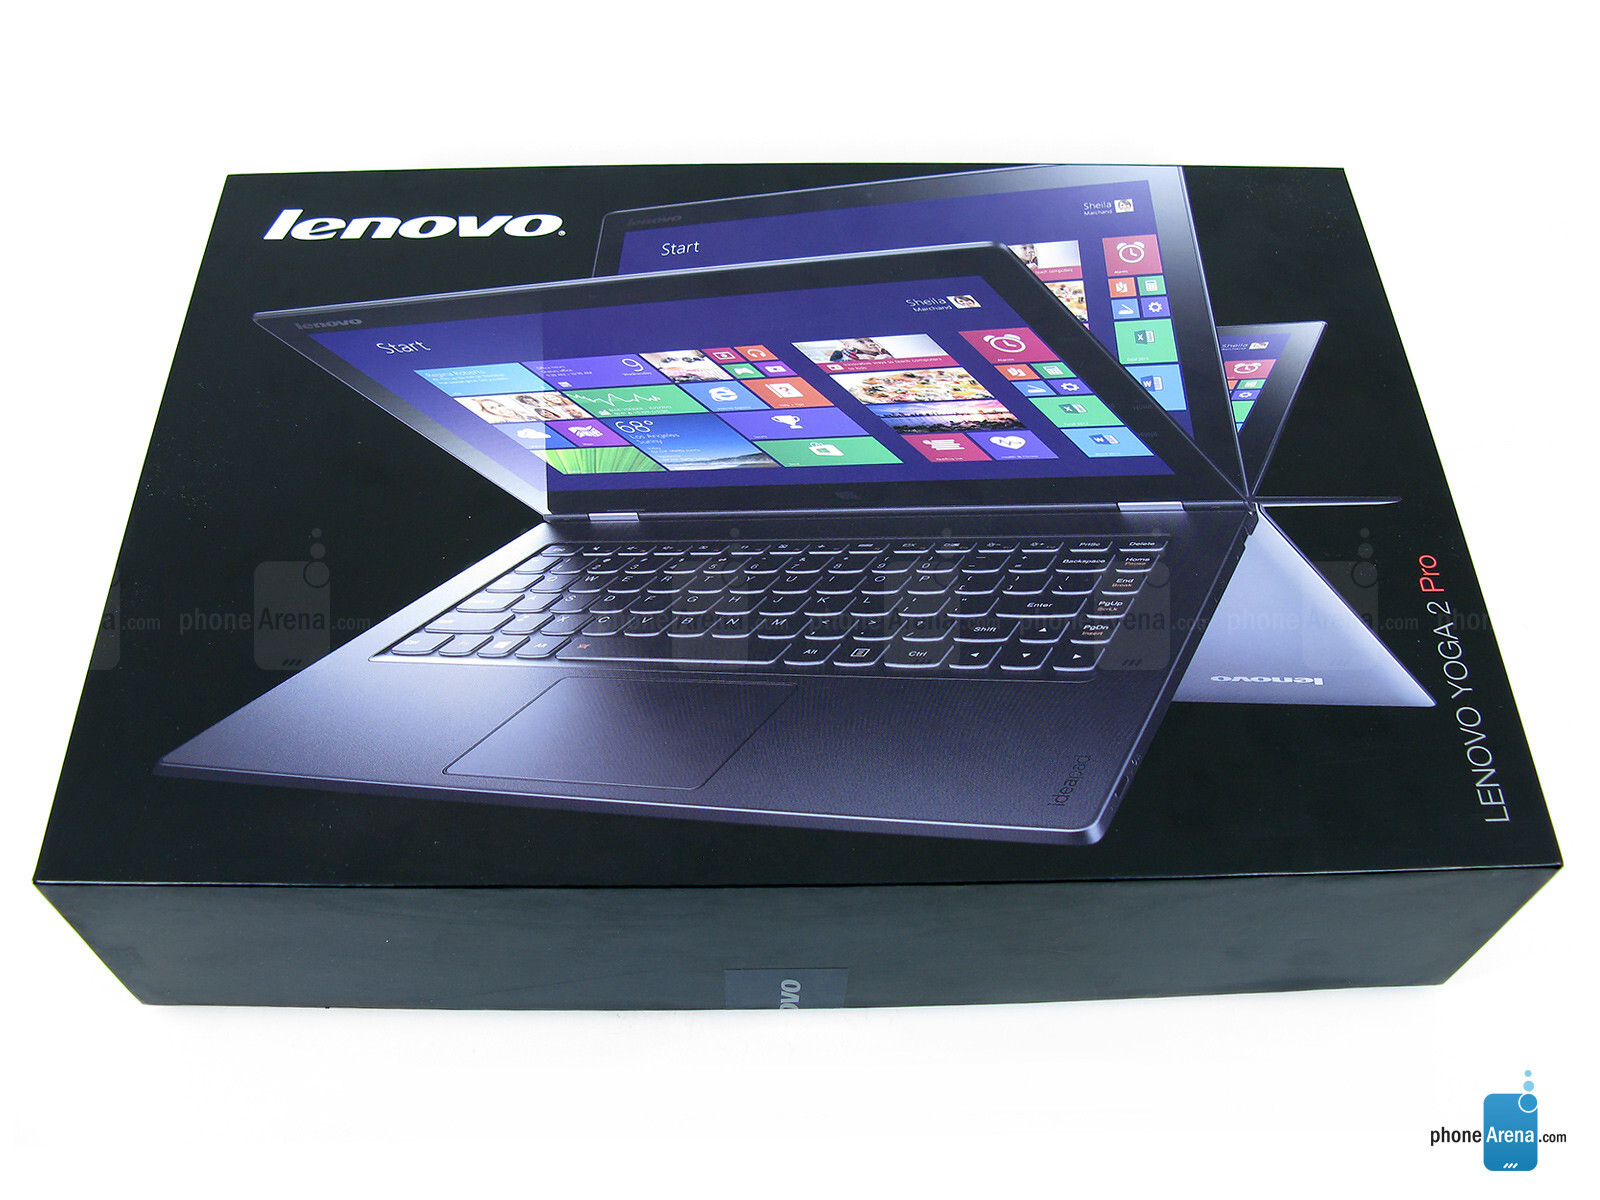 lenovo is refreshing their yoga series of ultrabooks with the yoga 2